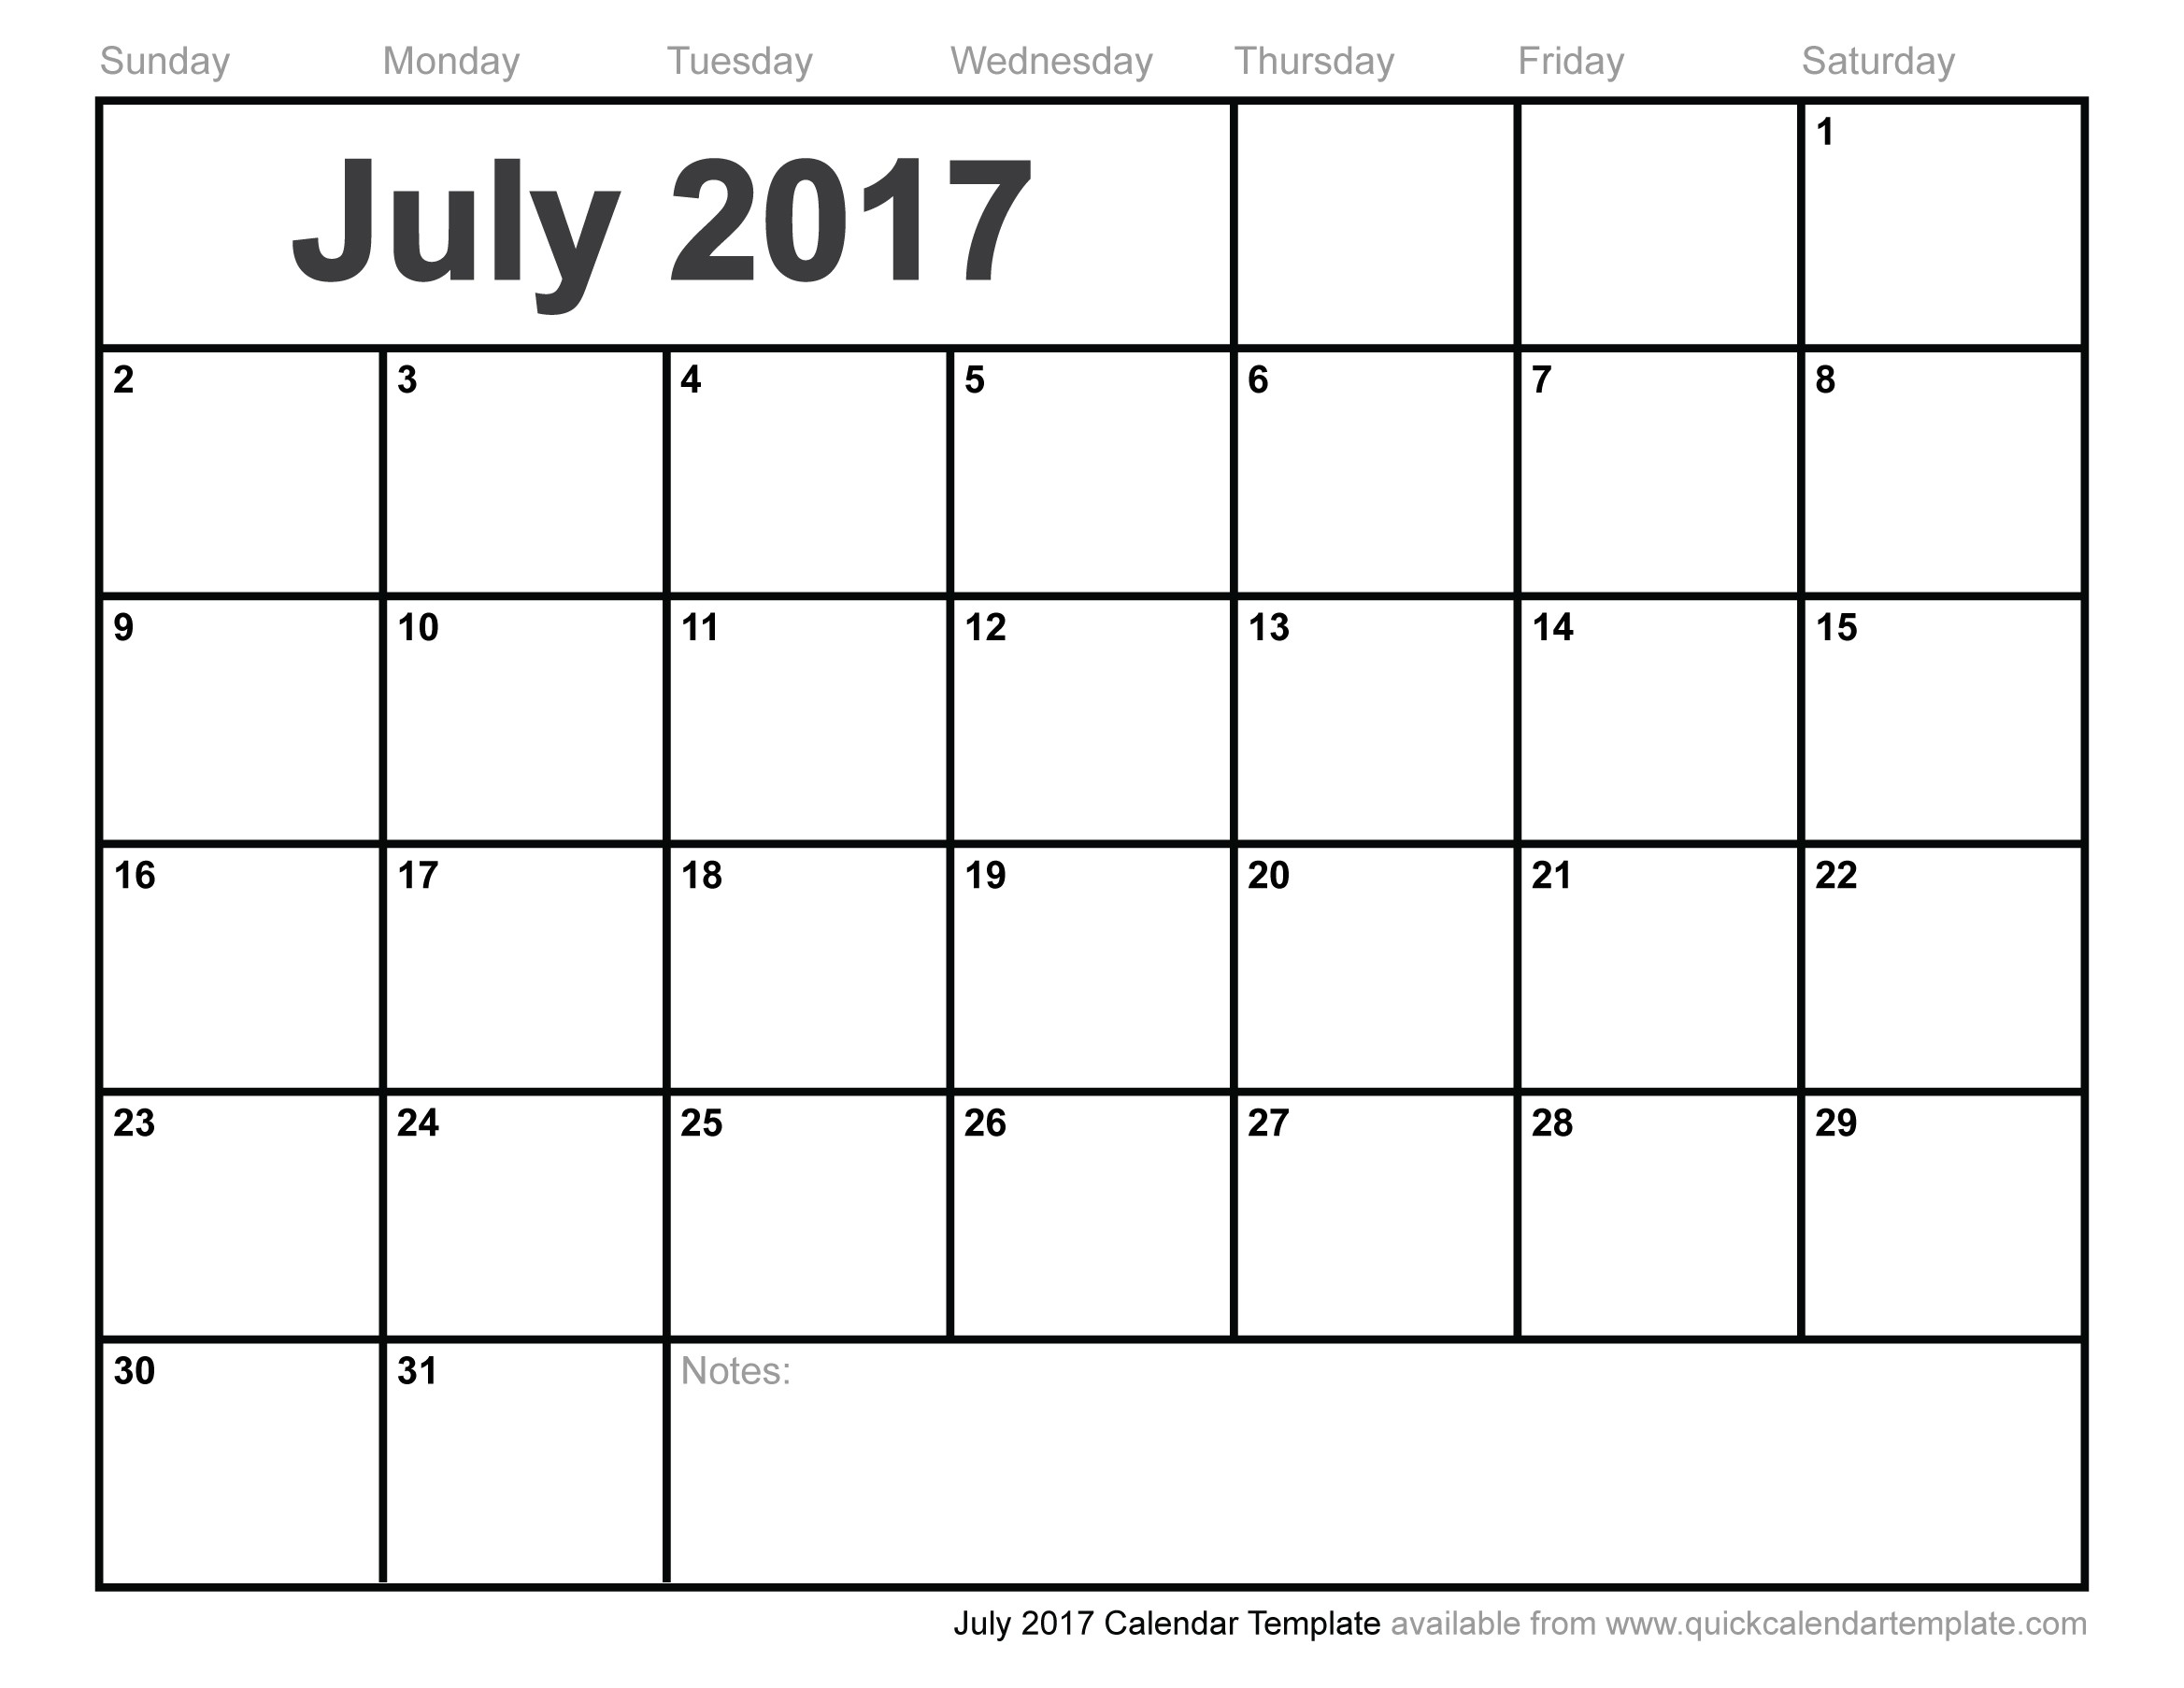 Free Photo Calendar Template 2017 July 2017 Calendar Pdf Weekly Calendar Template